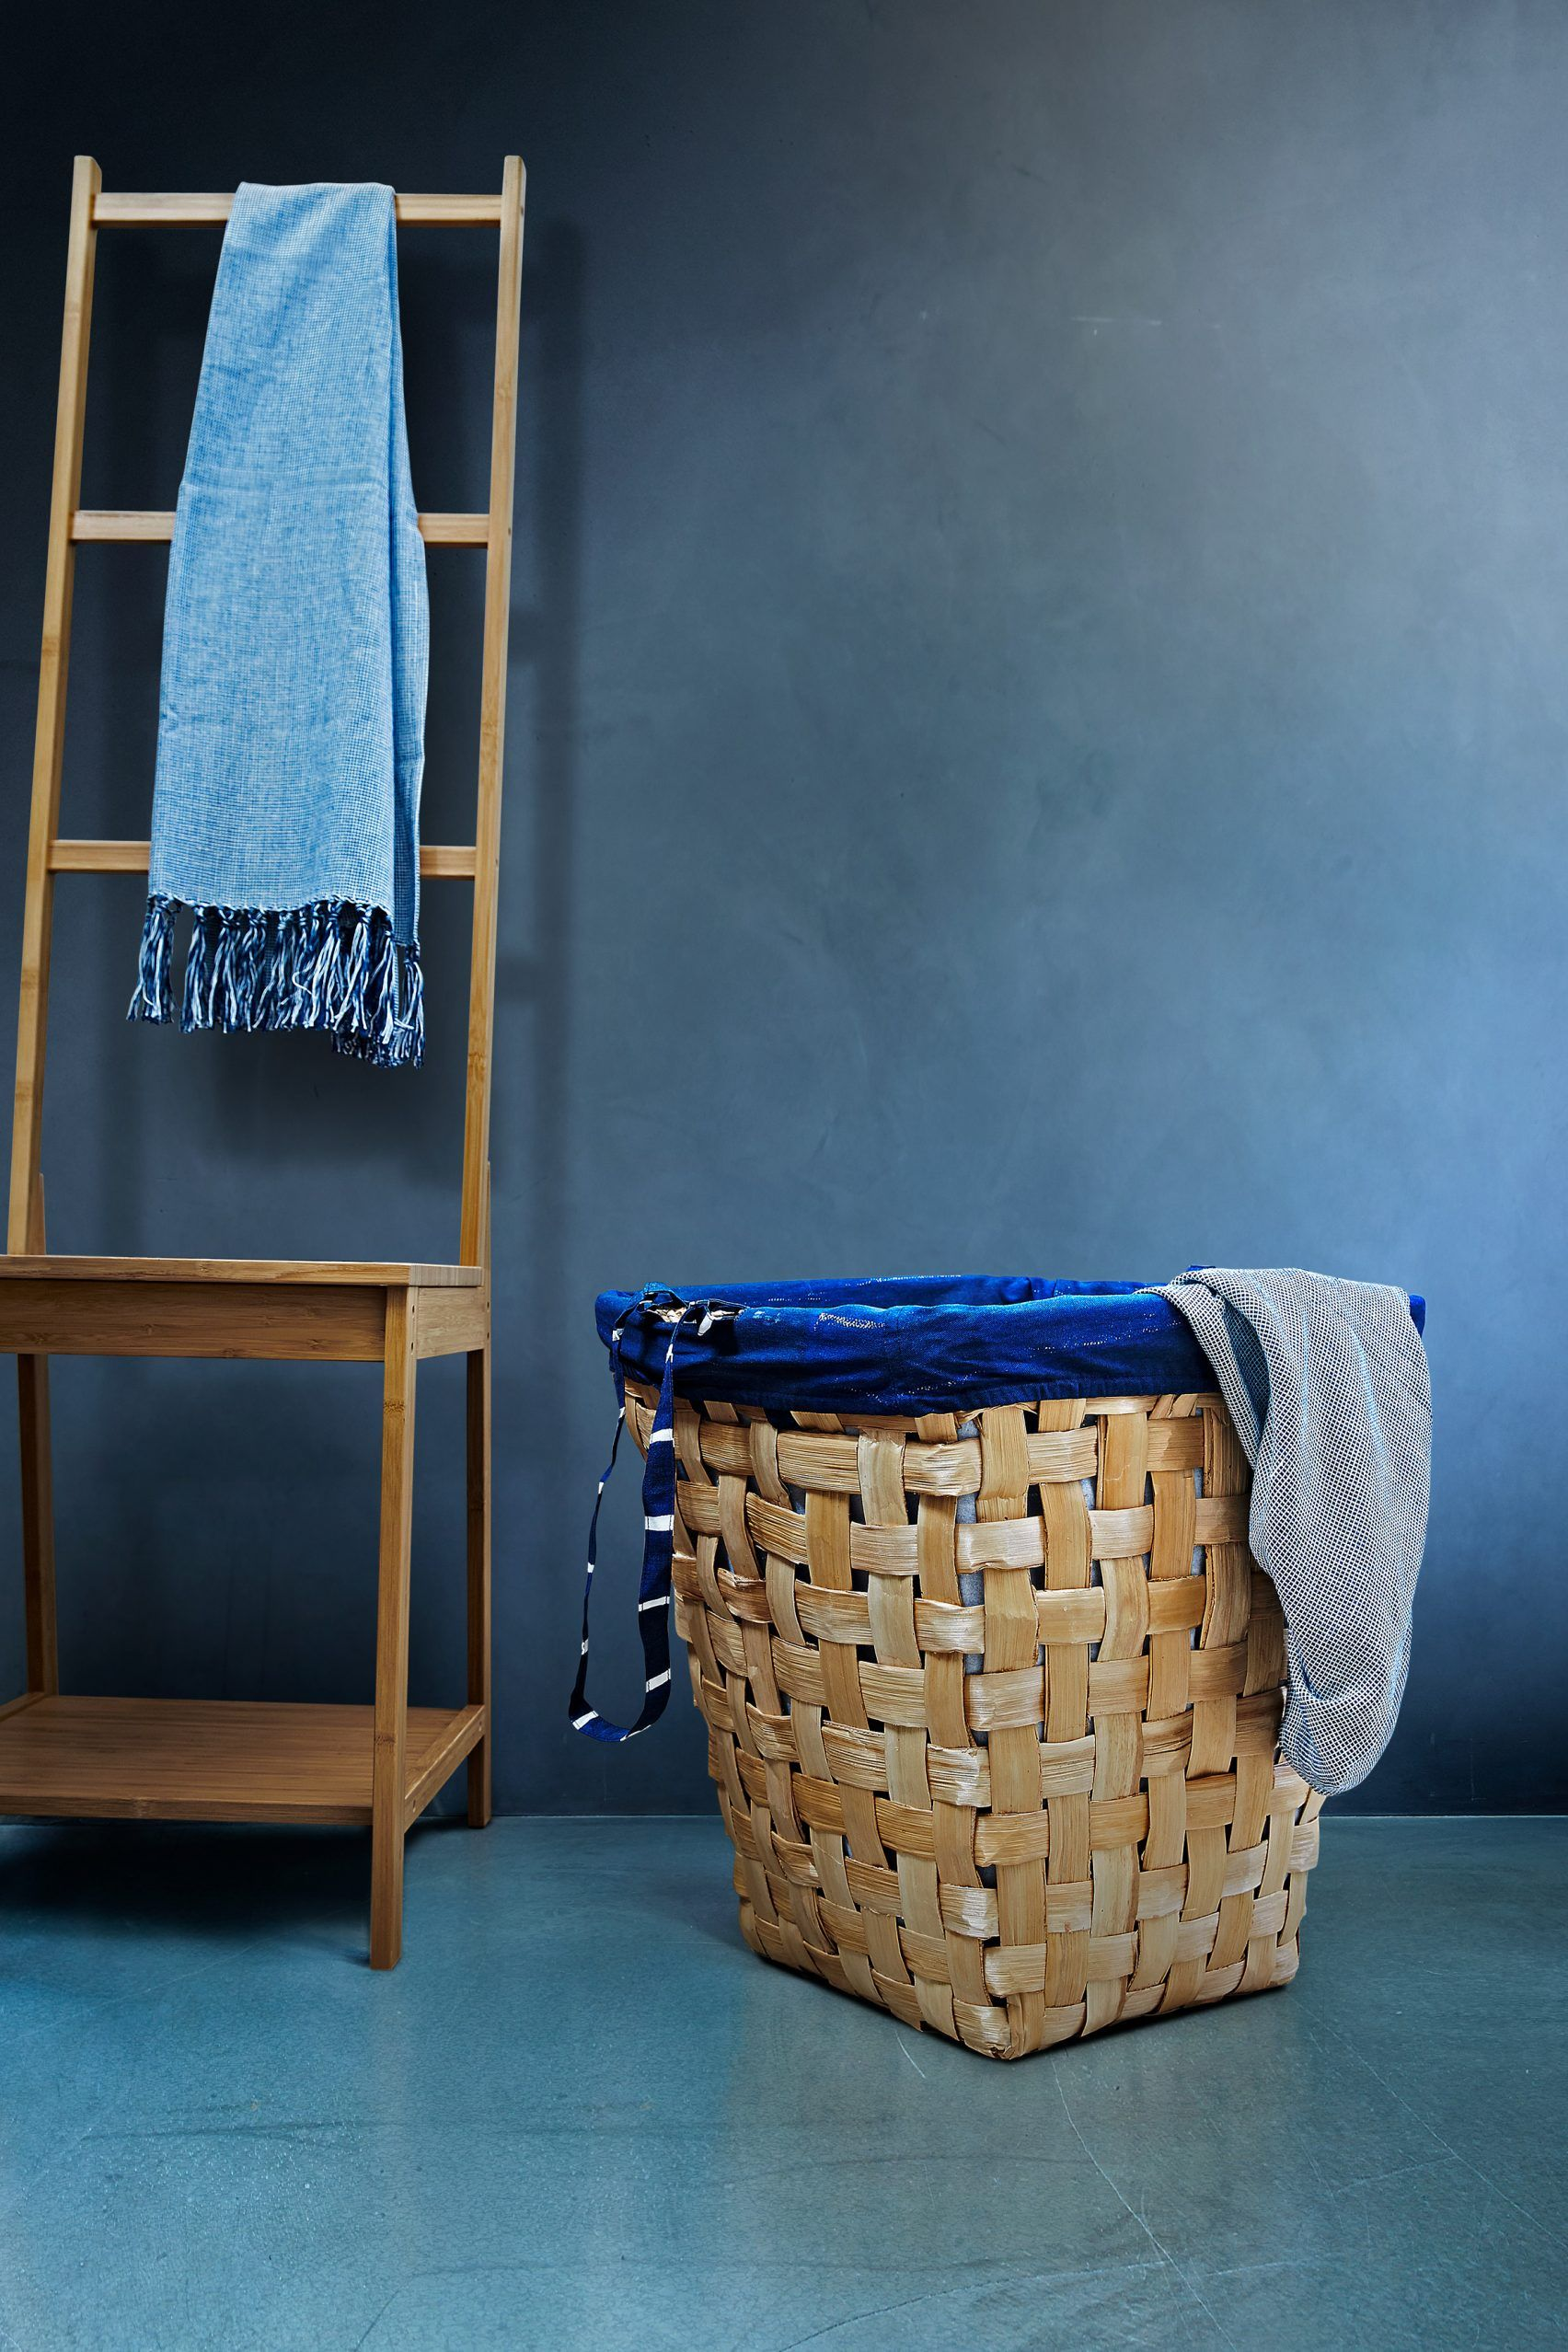 Ikea's new line of indigo goods is made by Indian artisans